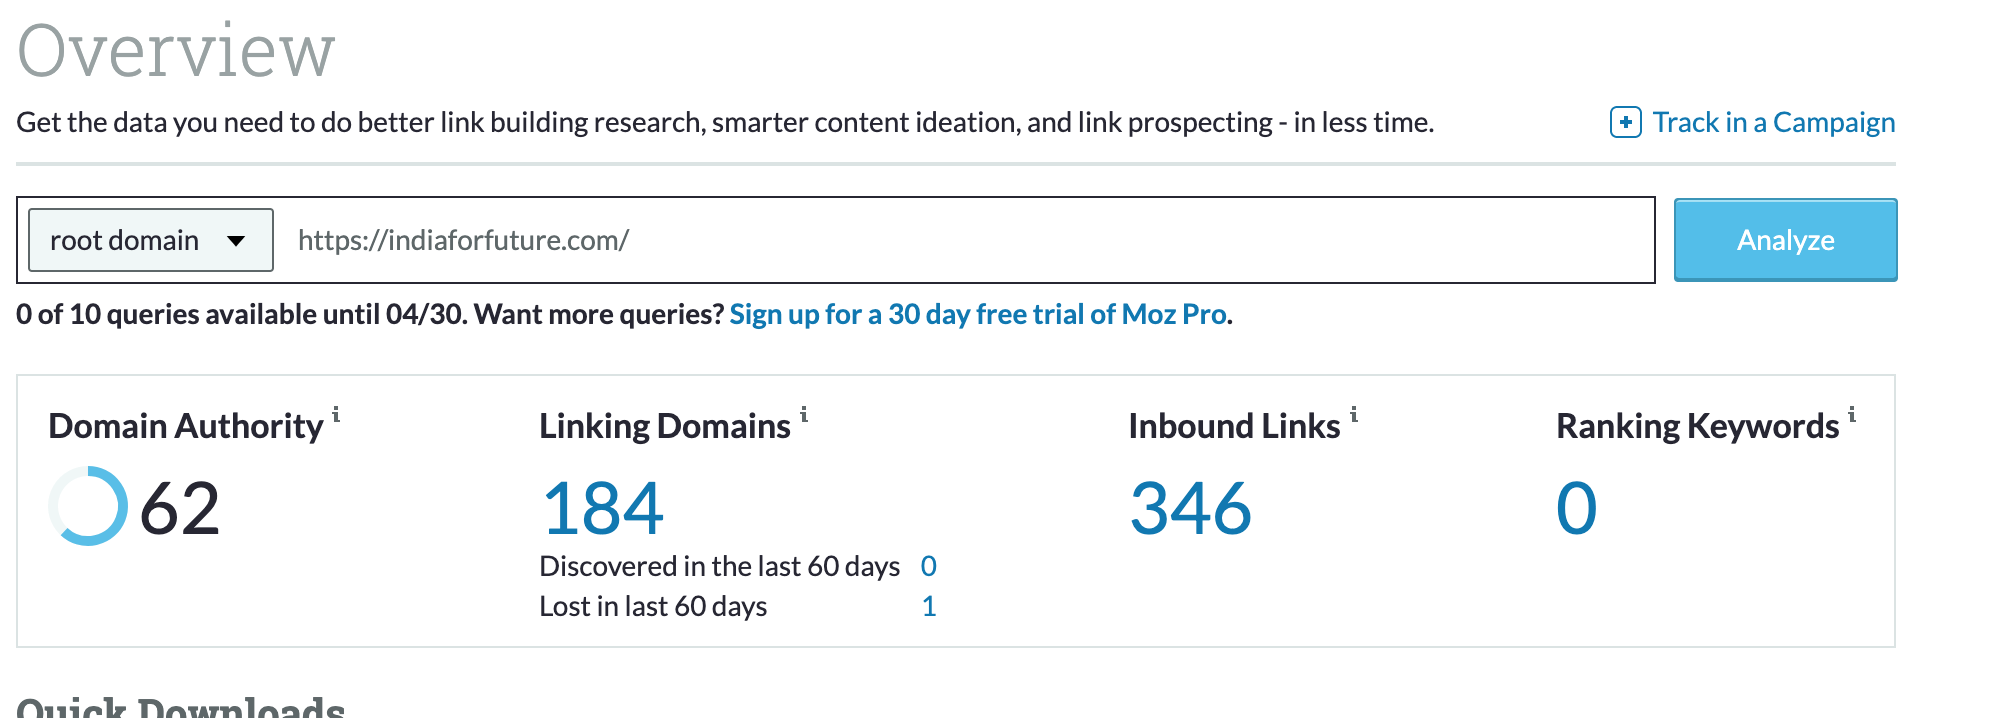 Guest post / Out reach links in DA 60 educational niche blog with high authority